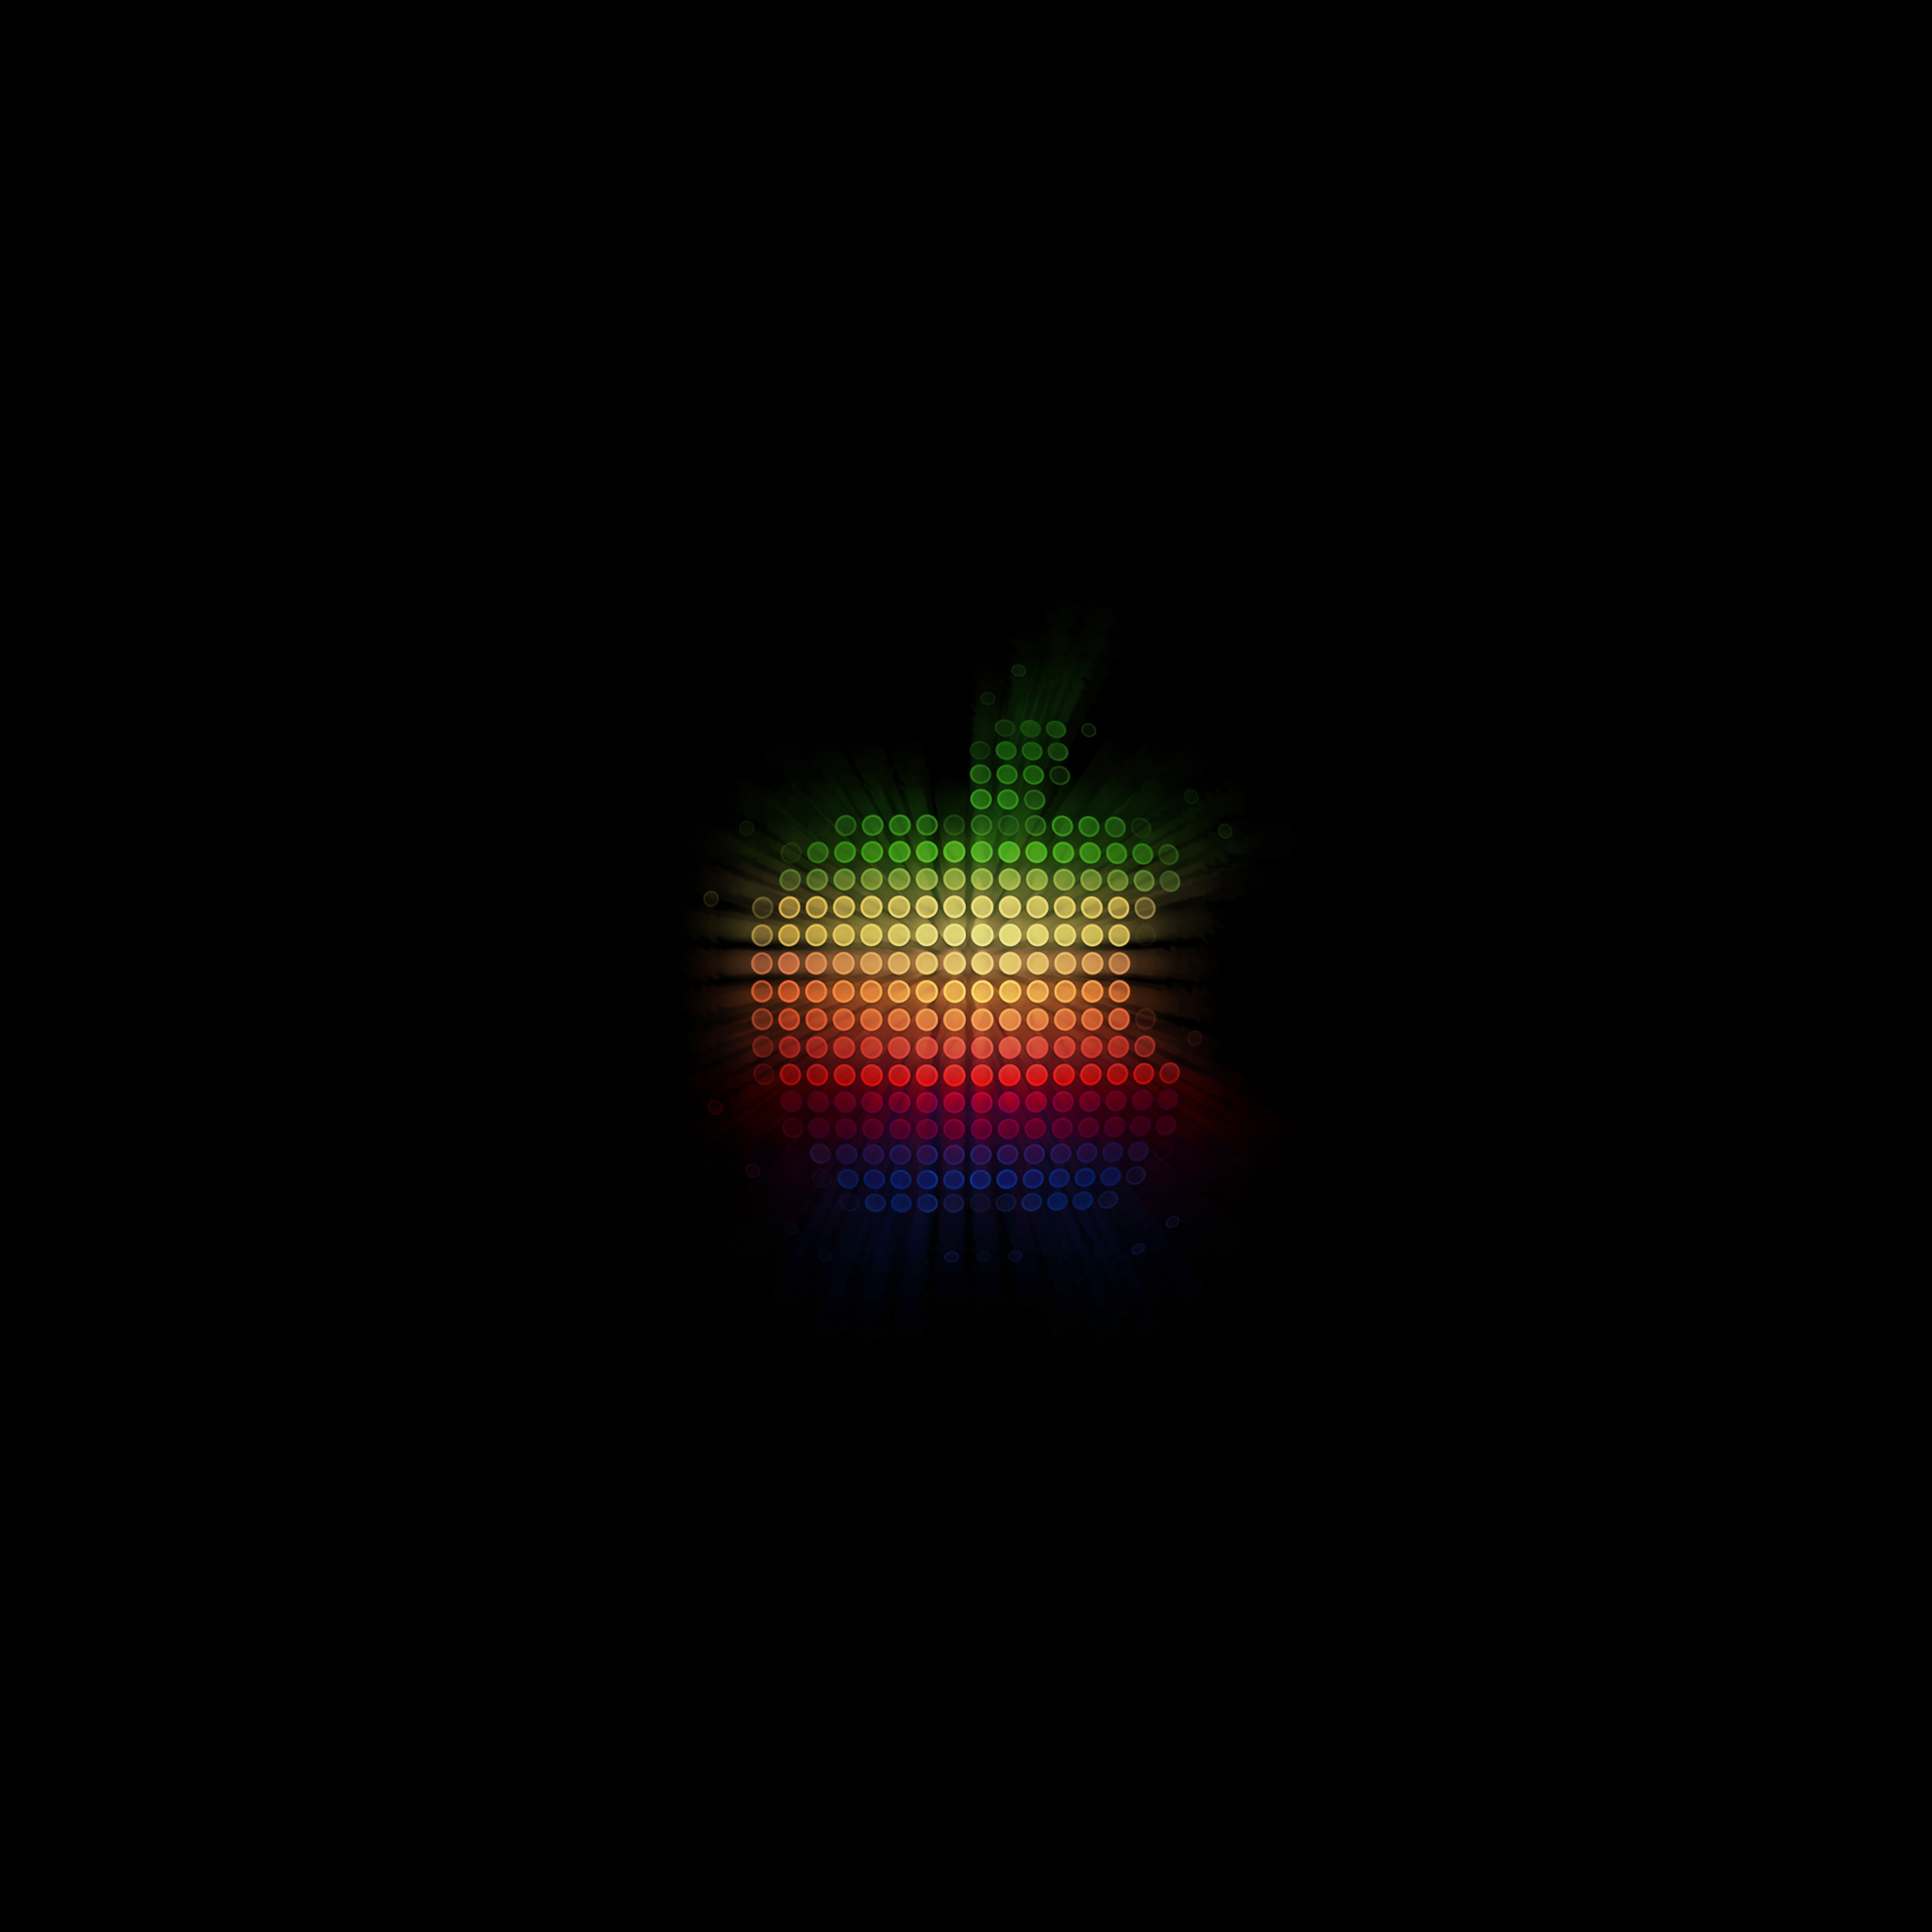 Apple iPad Air Wallpaper Download iPhone Wallpapers iPad wallpapers 2048x2048